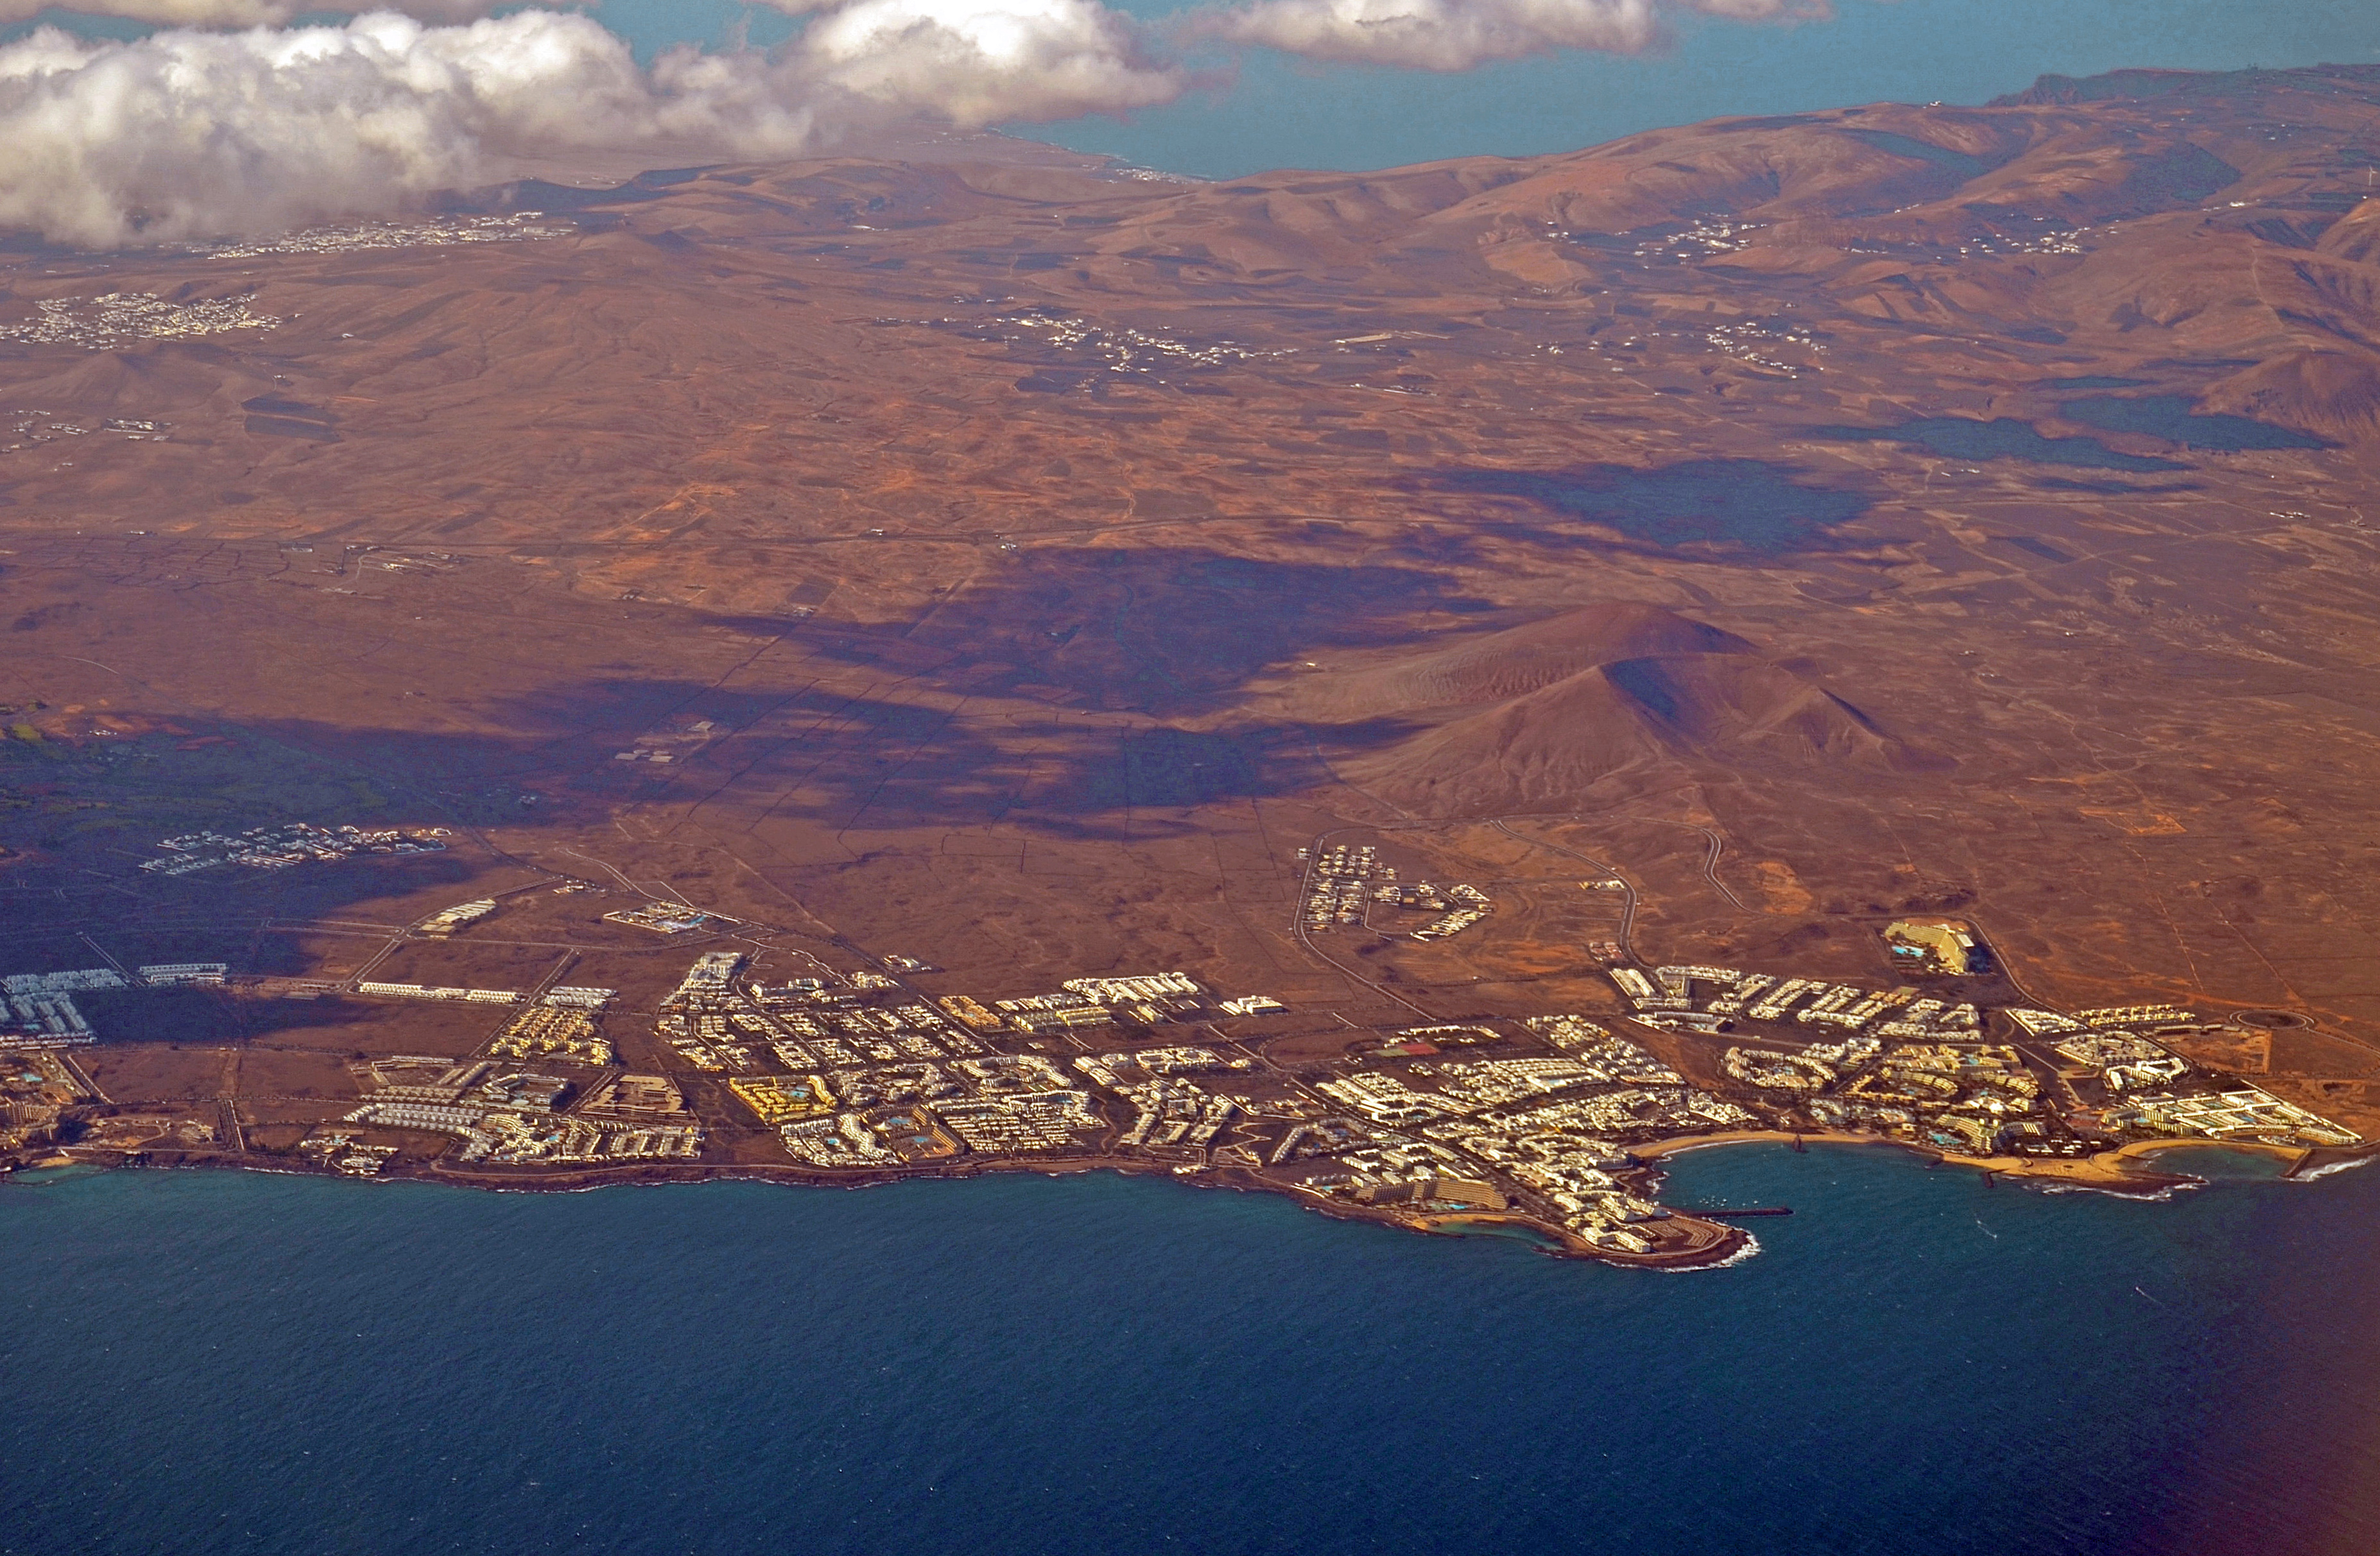 The village of Costa Teguise in Lanzarote